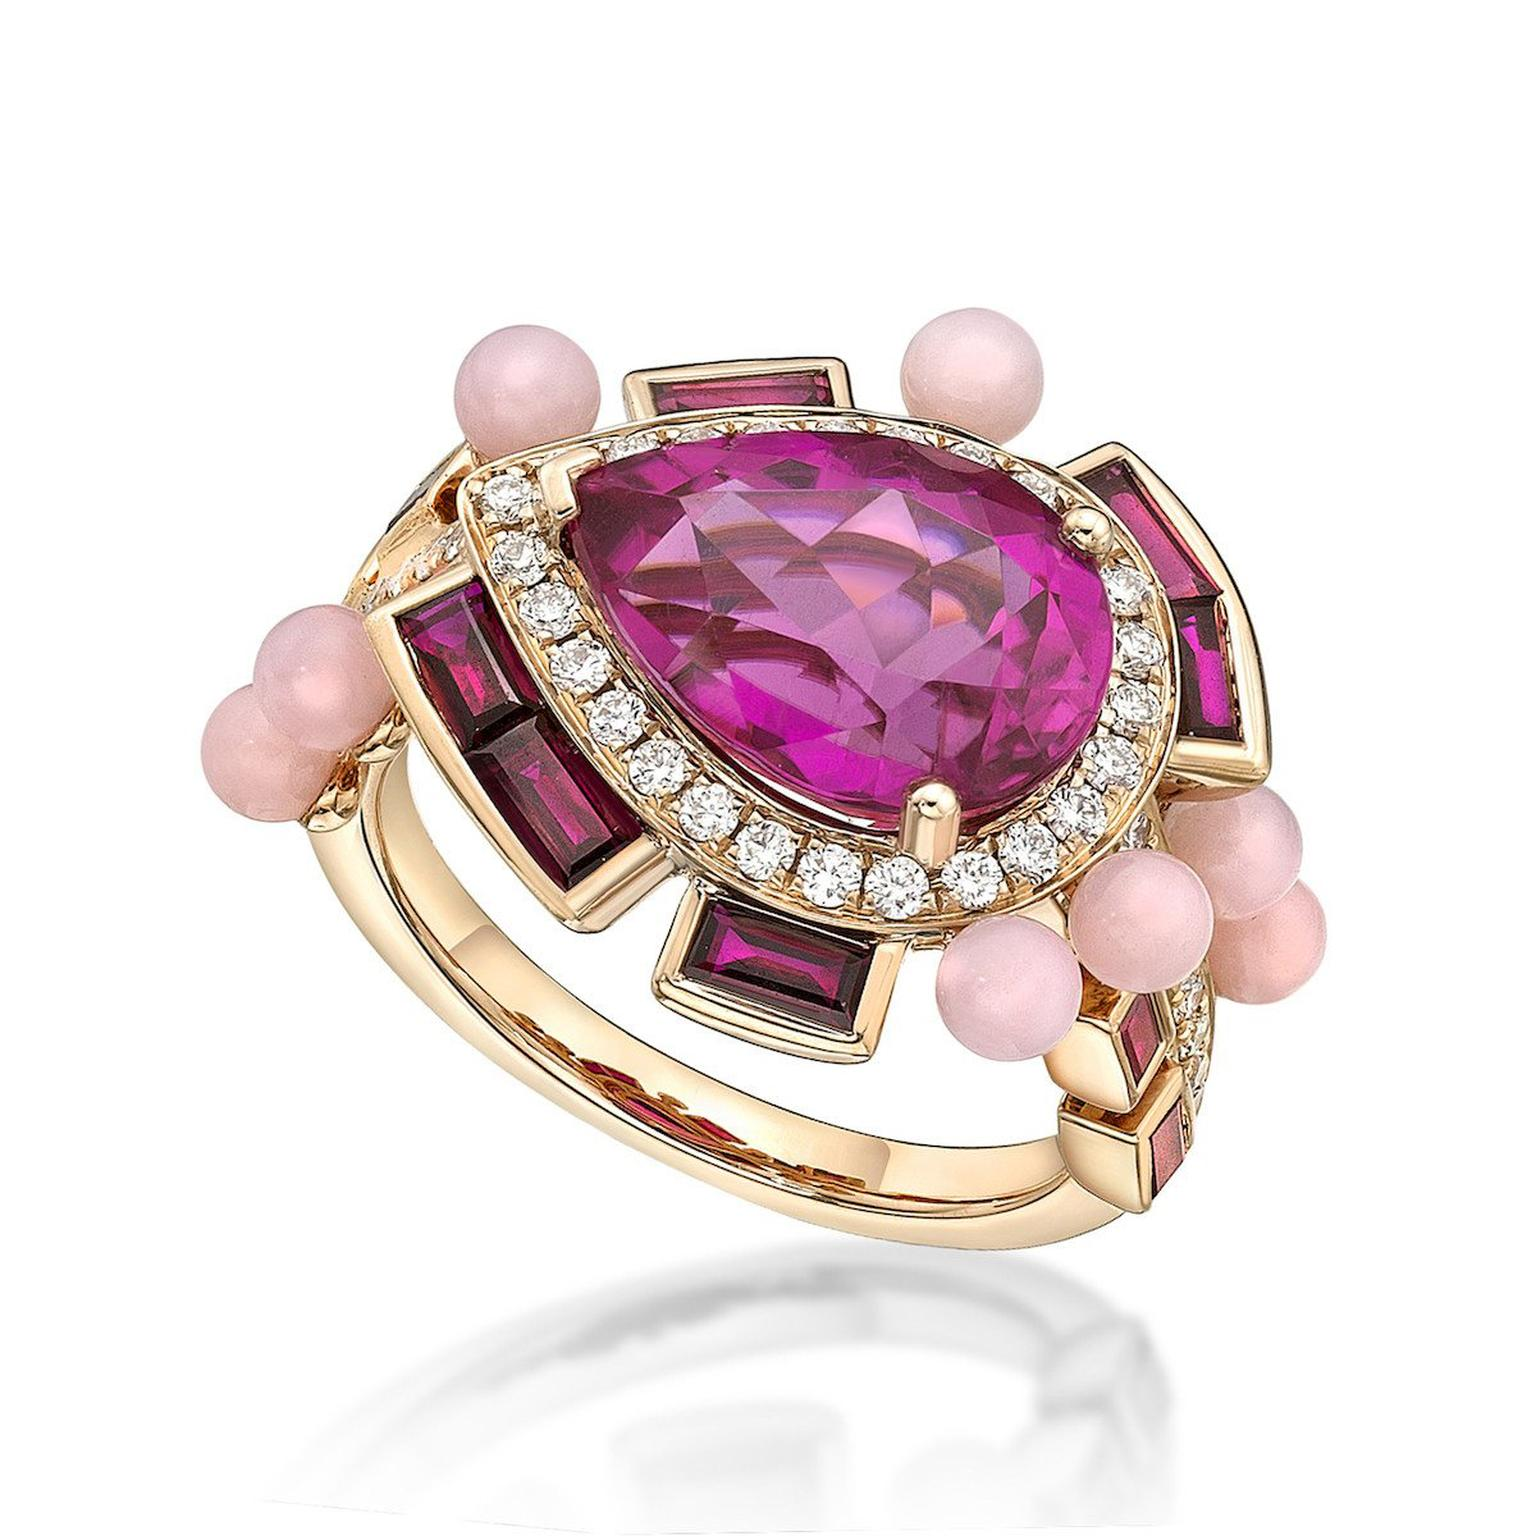 Hot-pink gems for the height of summer